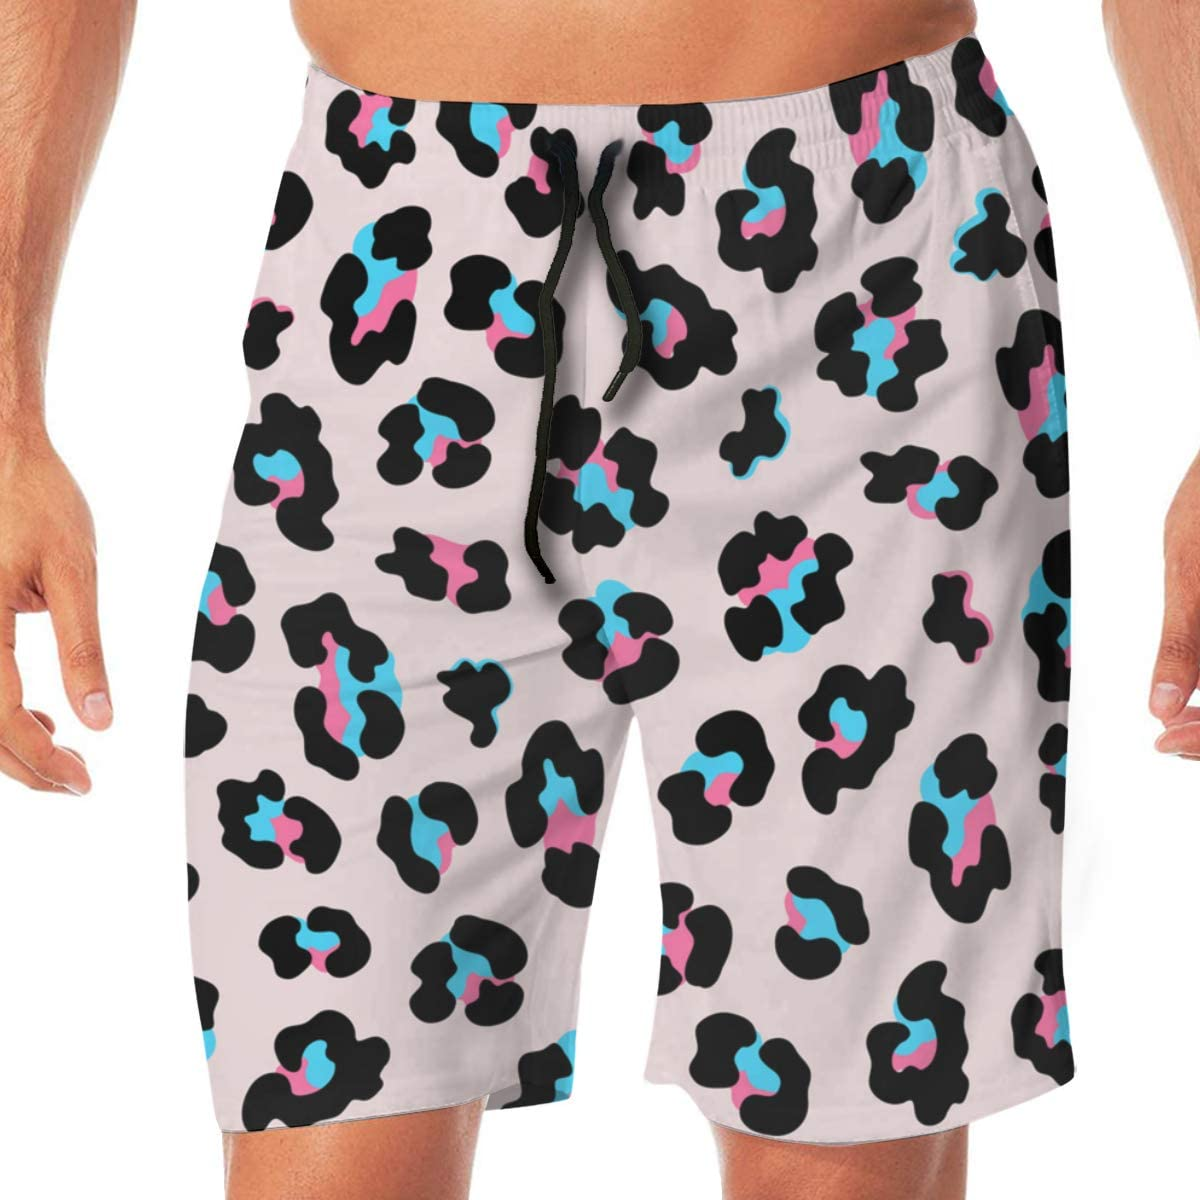 Men's Casual Classic Beach Short Quick Dry All Over Classic Leopard Color Print Pink Print Swim Trunk for Man